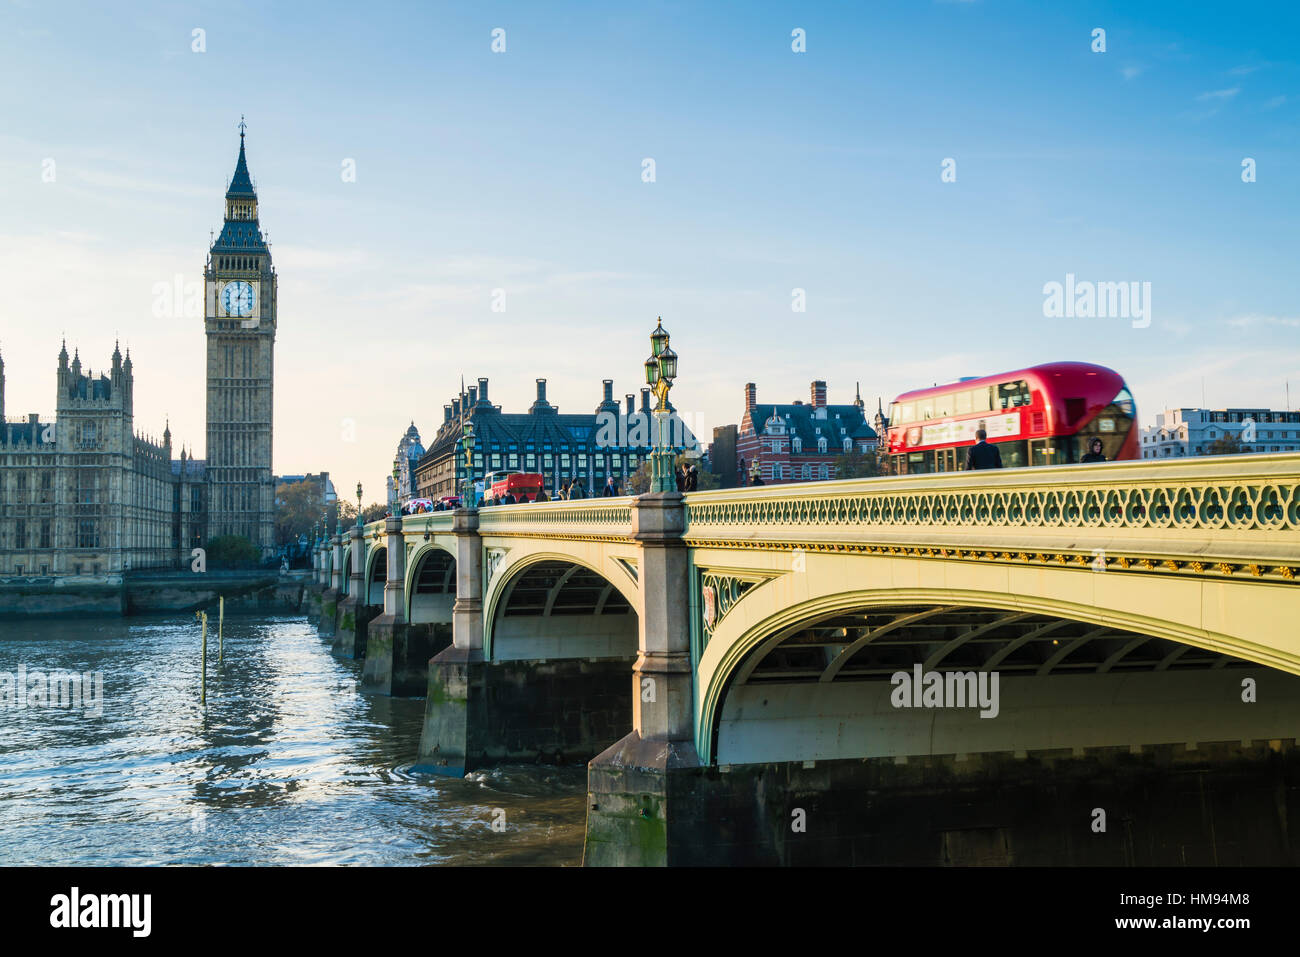 Red bus crossing Westminster Bridge towards Big Ben and the Houses of Parliament, London, England, United Kingdom - Stock Image